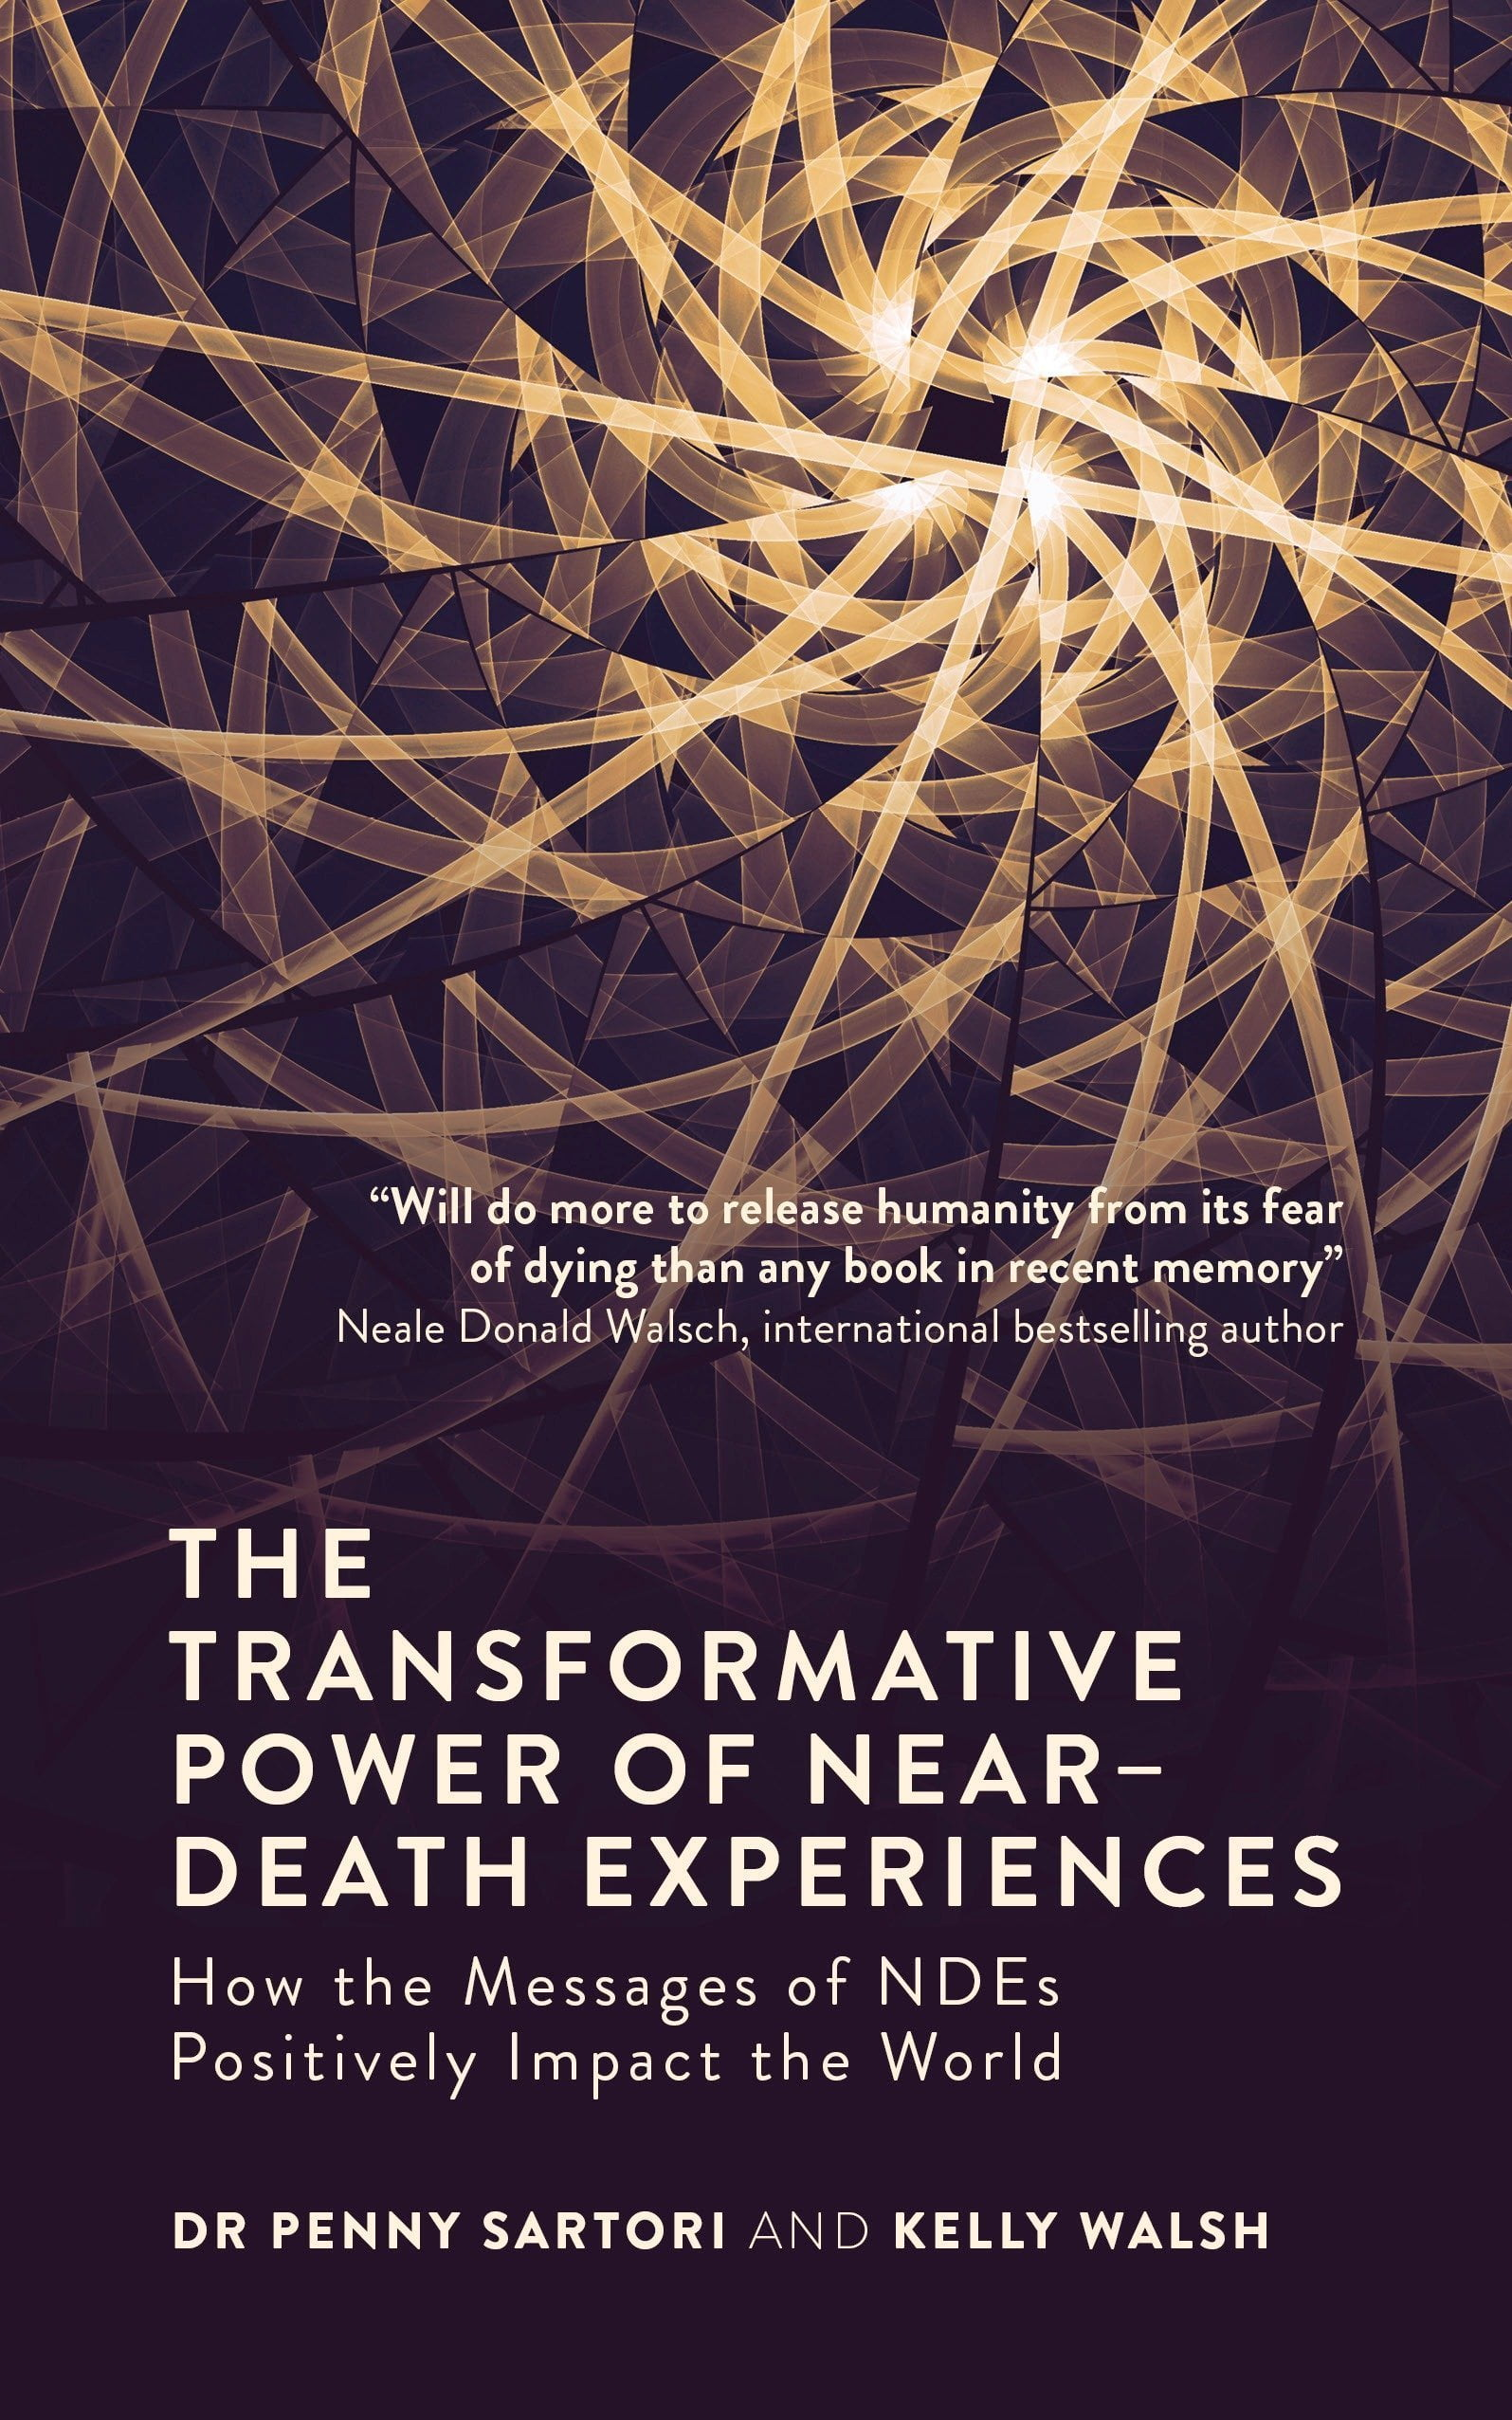 The Transformative Power of Near-Death Experiences by Dr. Penny Sartori and Kelly Walsh